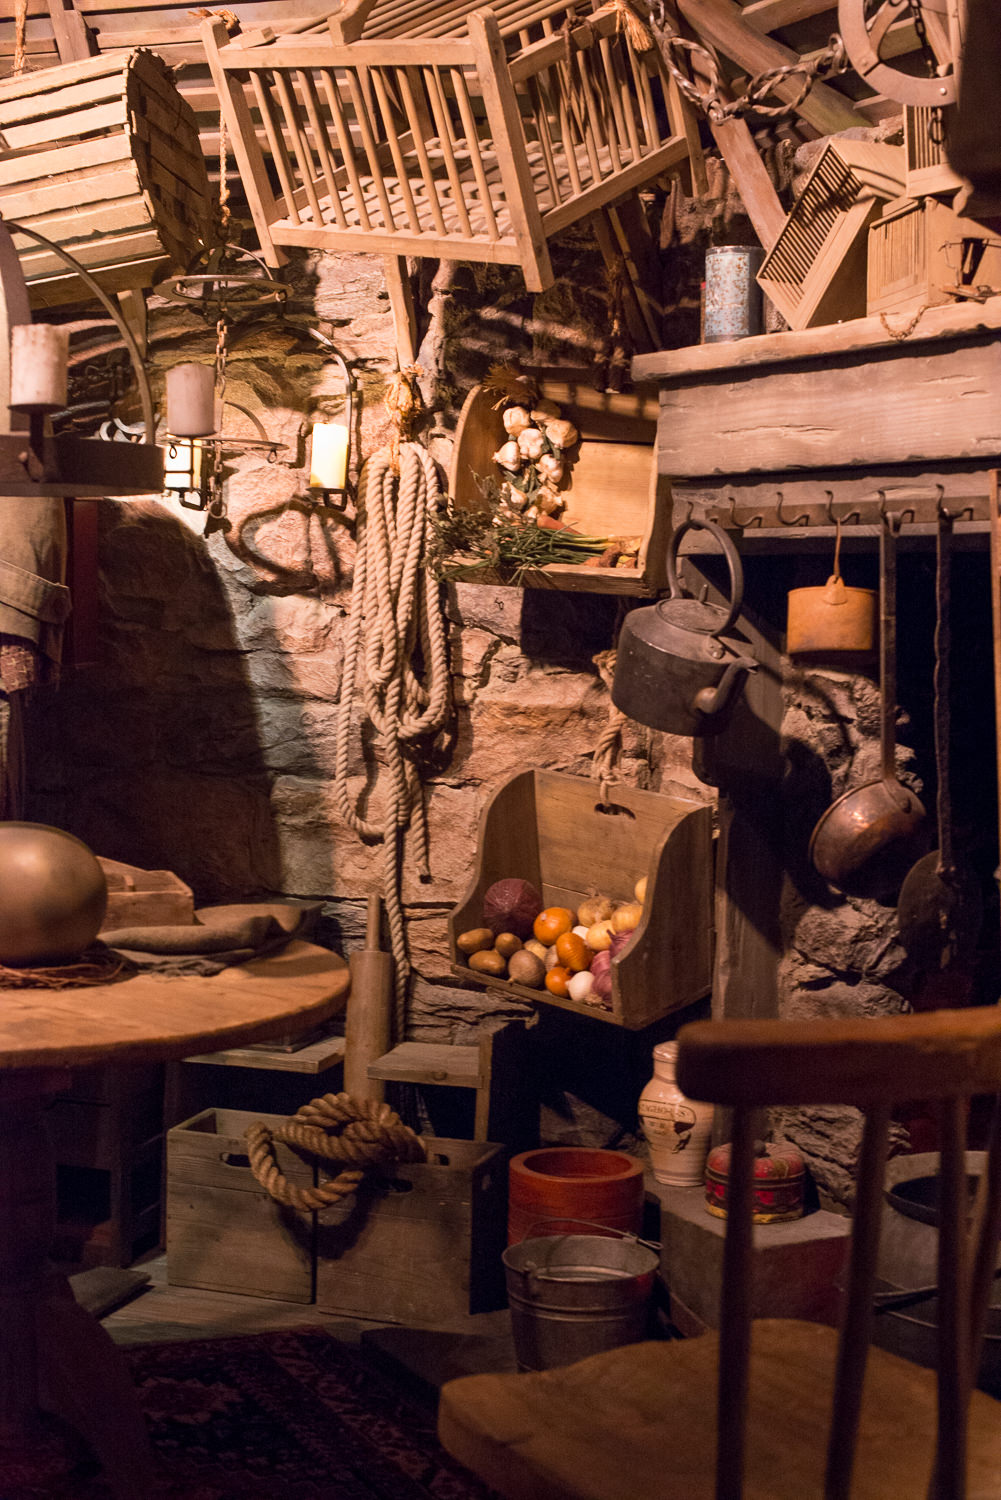 Blog Mode And The City - Exposition Harry Potter Paris - Hagrid cabin